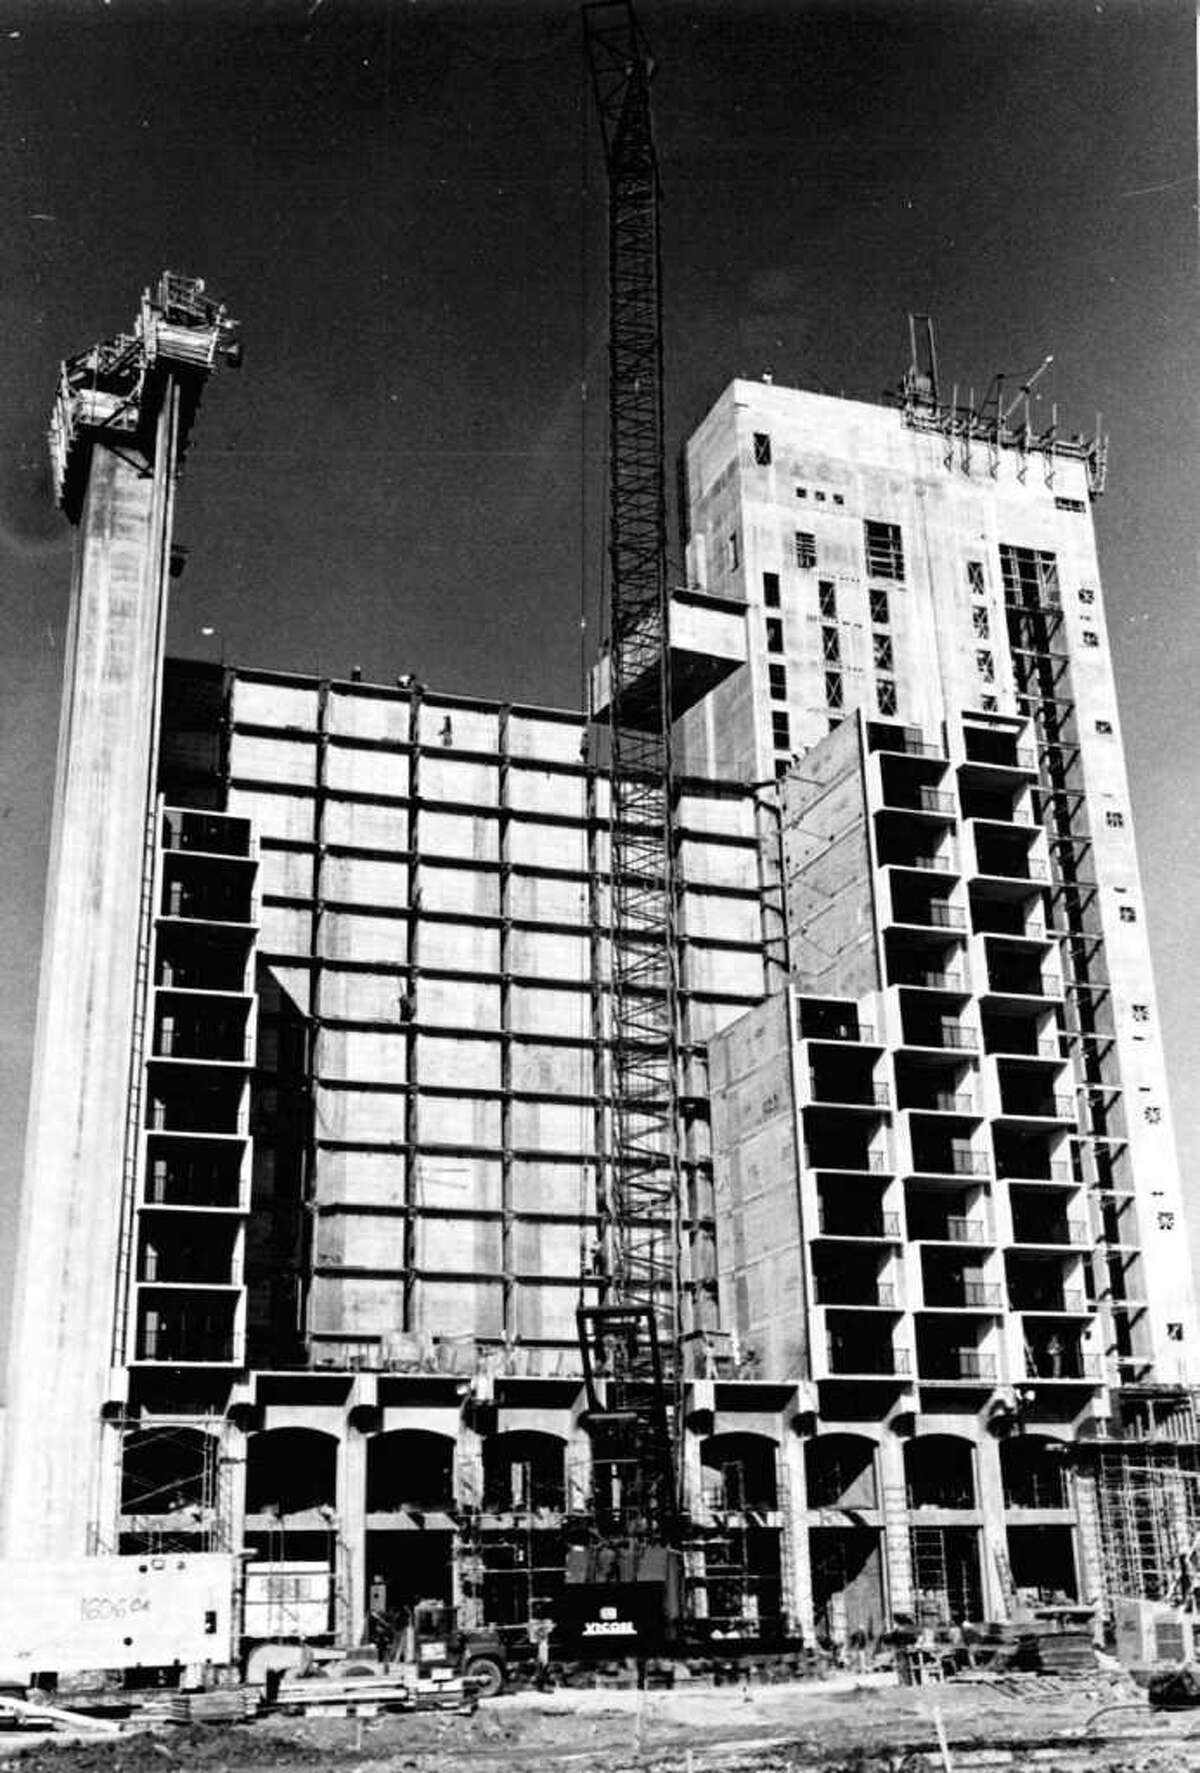 Construction at the Hilton Palacio del Rio was begun in July 1967 and finished March 1968. (Archive photo)